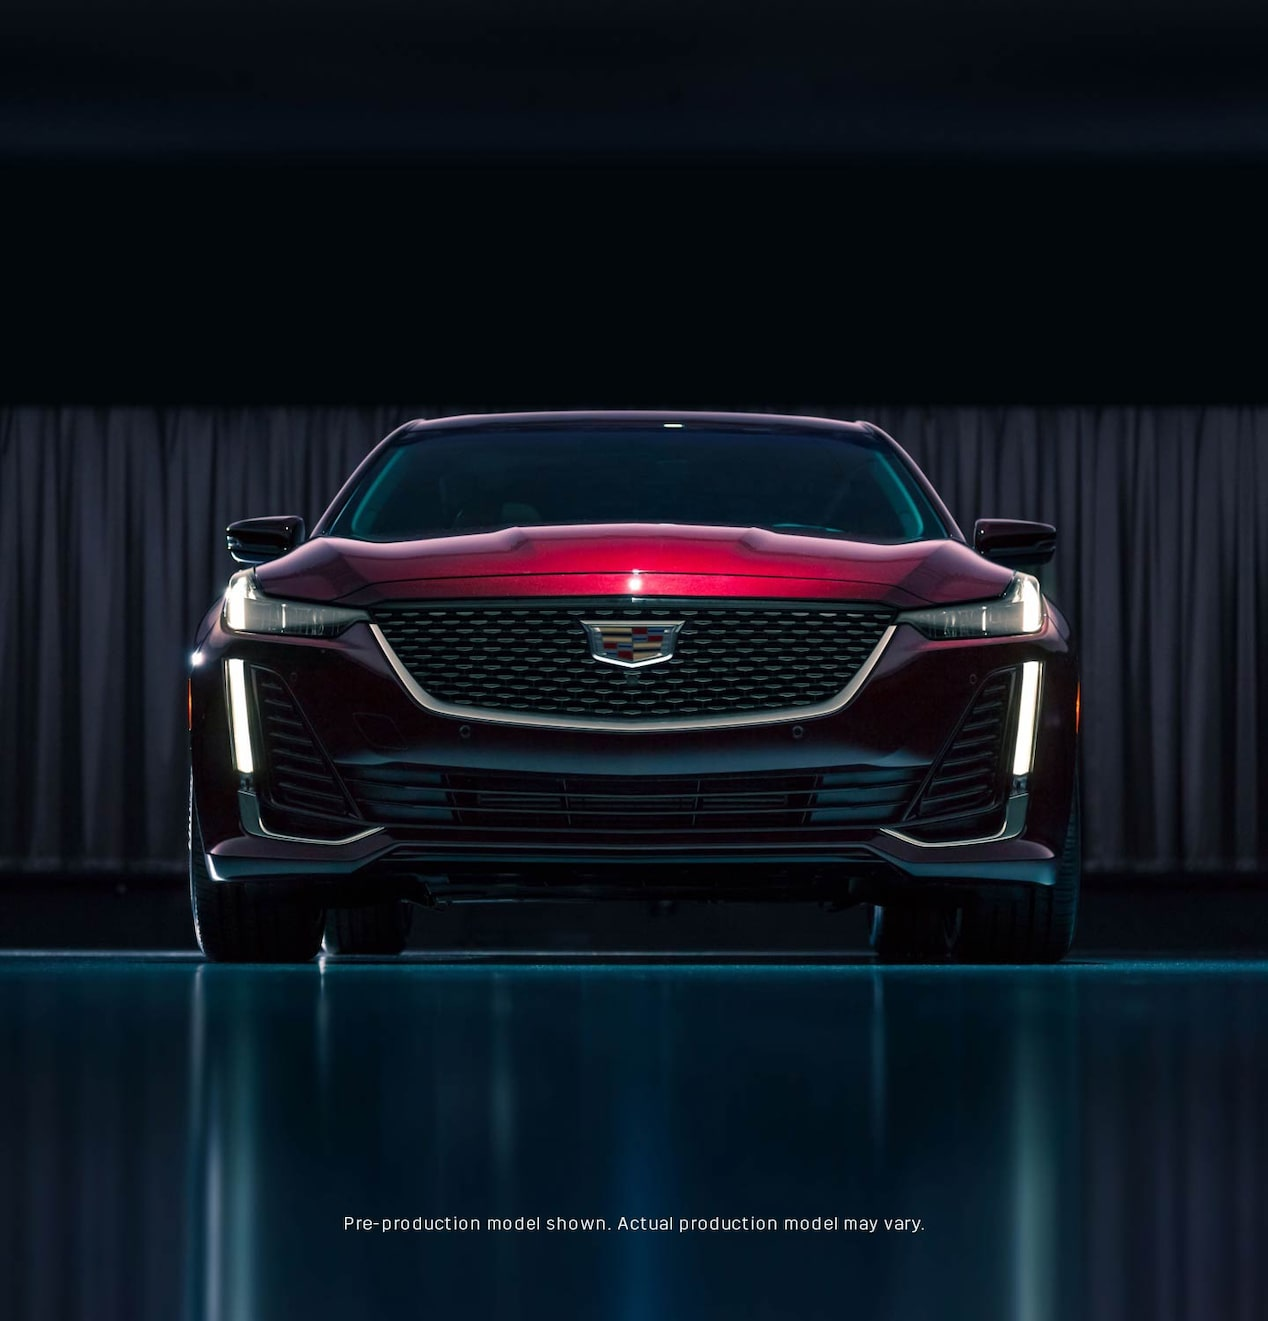 Front view of a dark red 2020 Cadillac CT5.